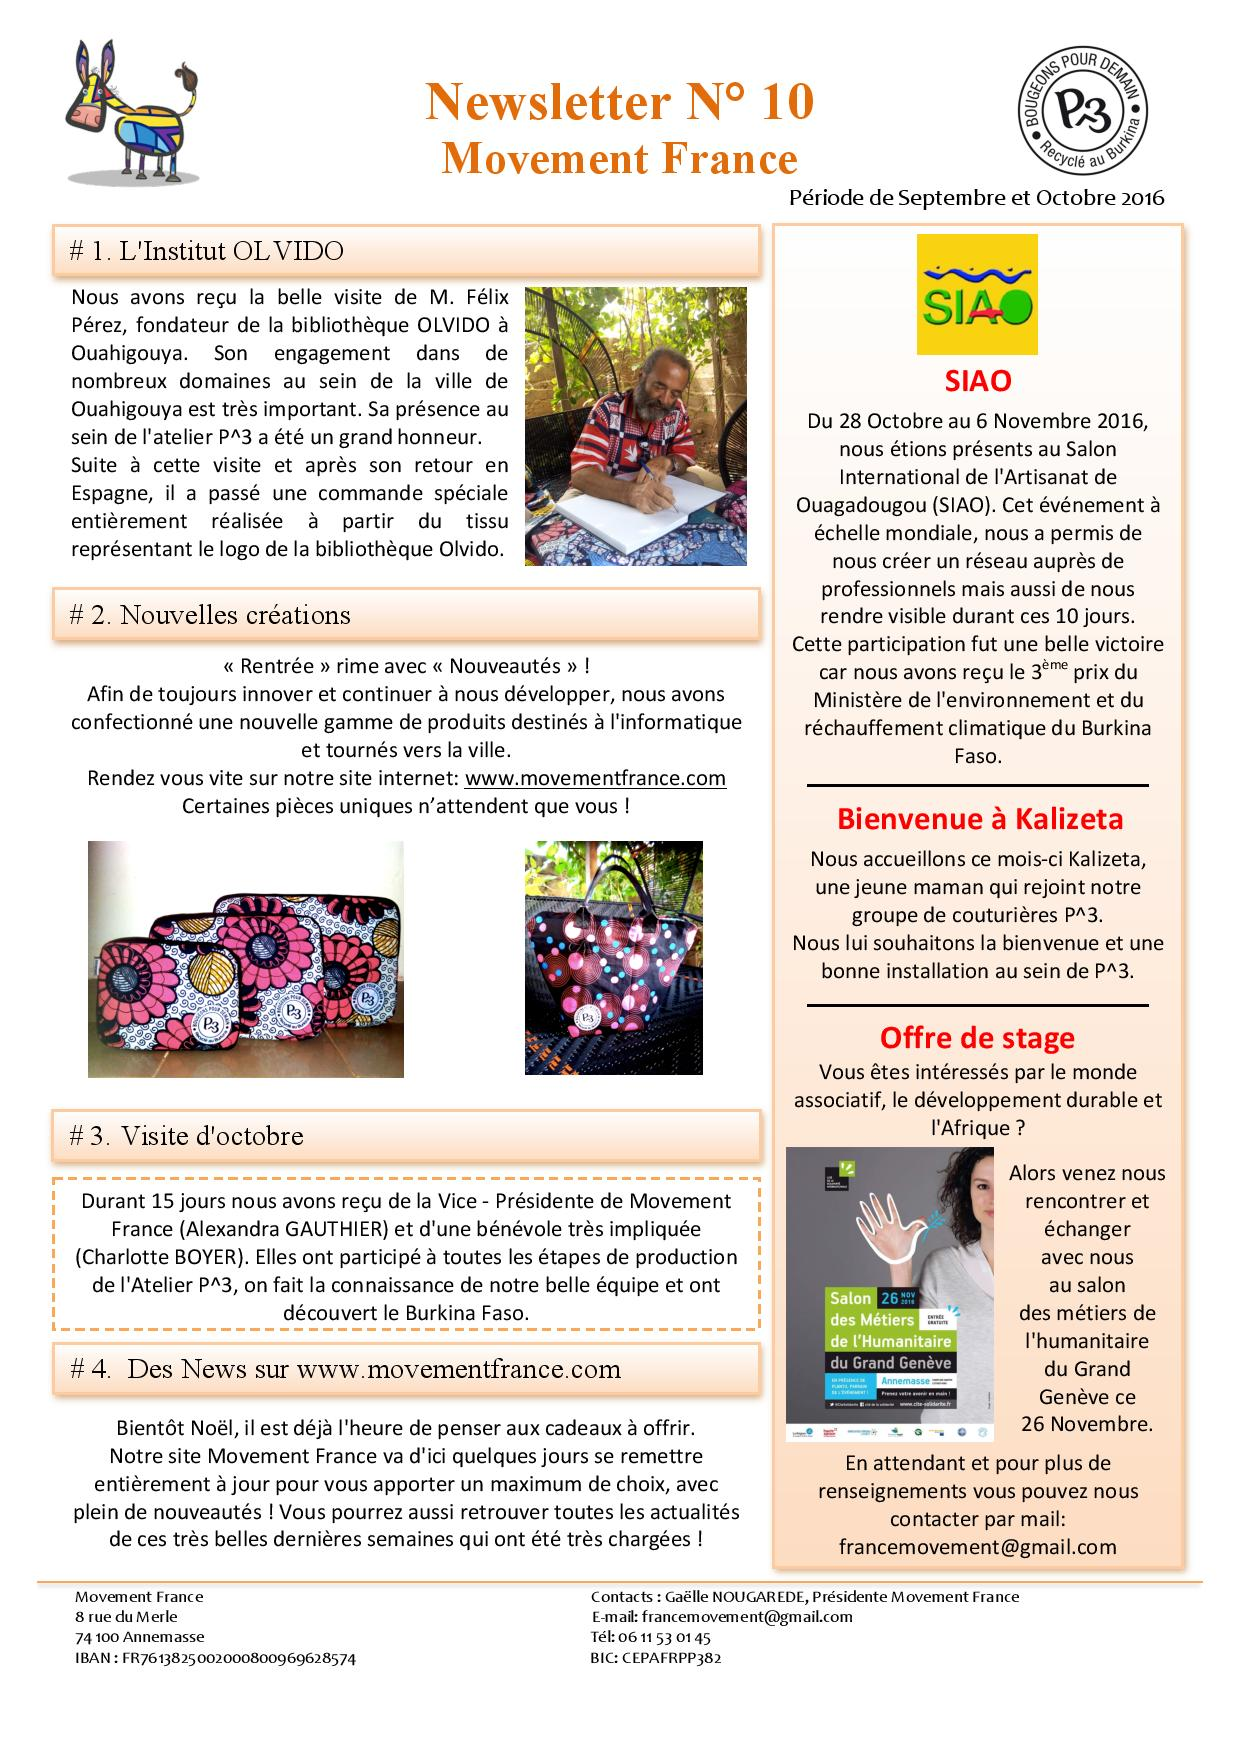 newsletter-n10-page-001